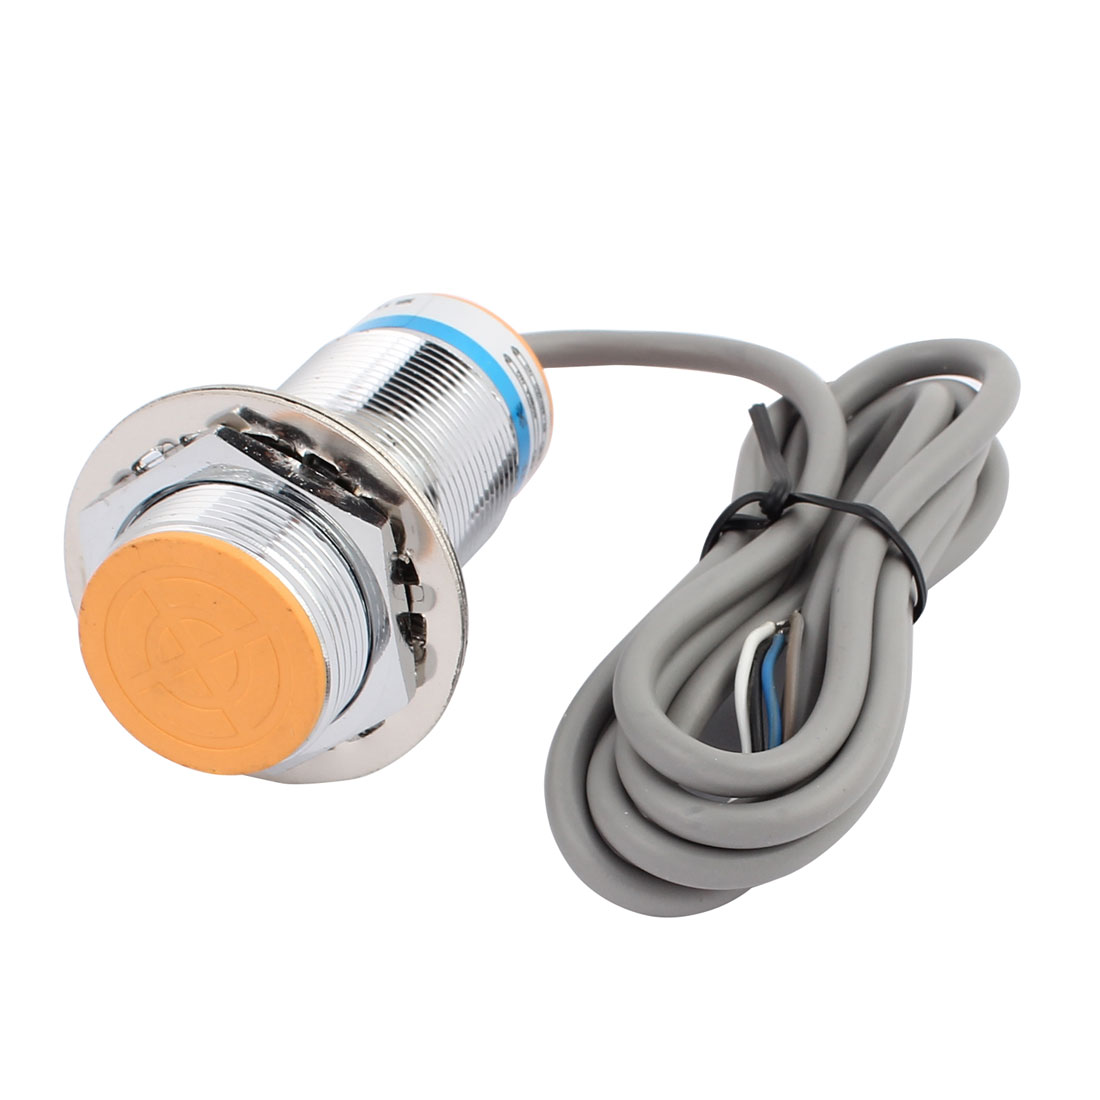 LJ30A3-10-J/EDZ AC 90-250V 400mA NO+NC 10mm Inductive Proximity Sensor Switch 4-wire